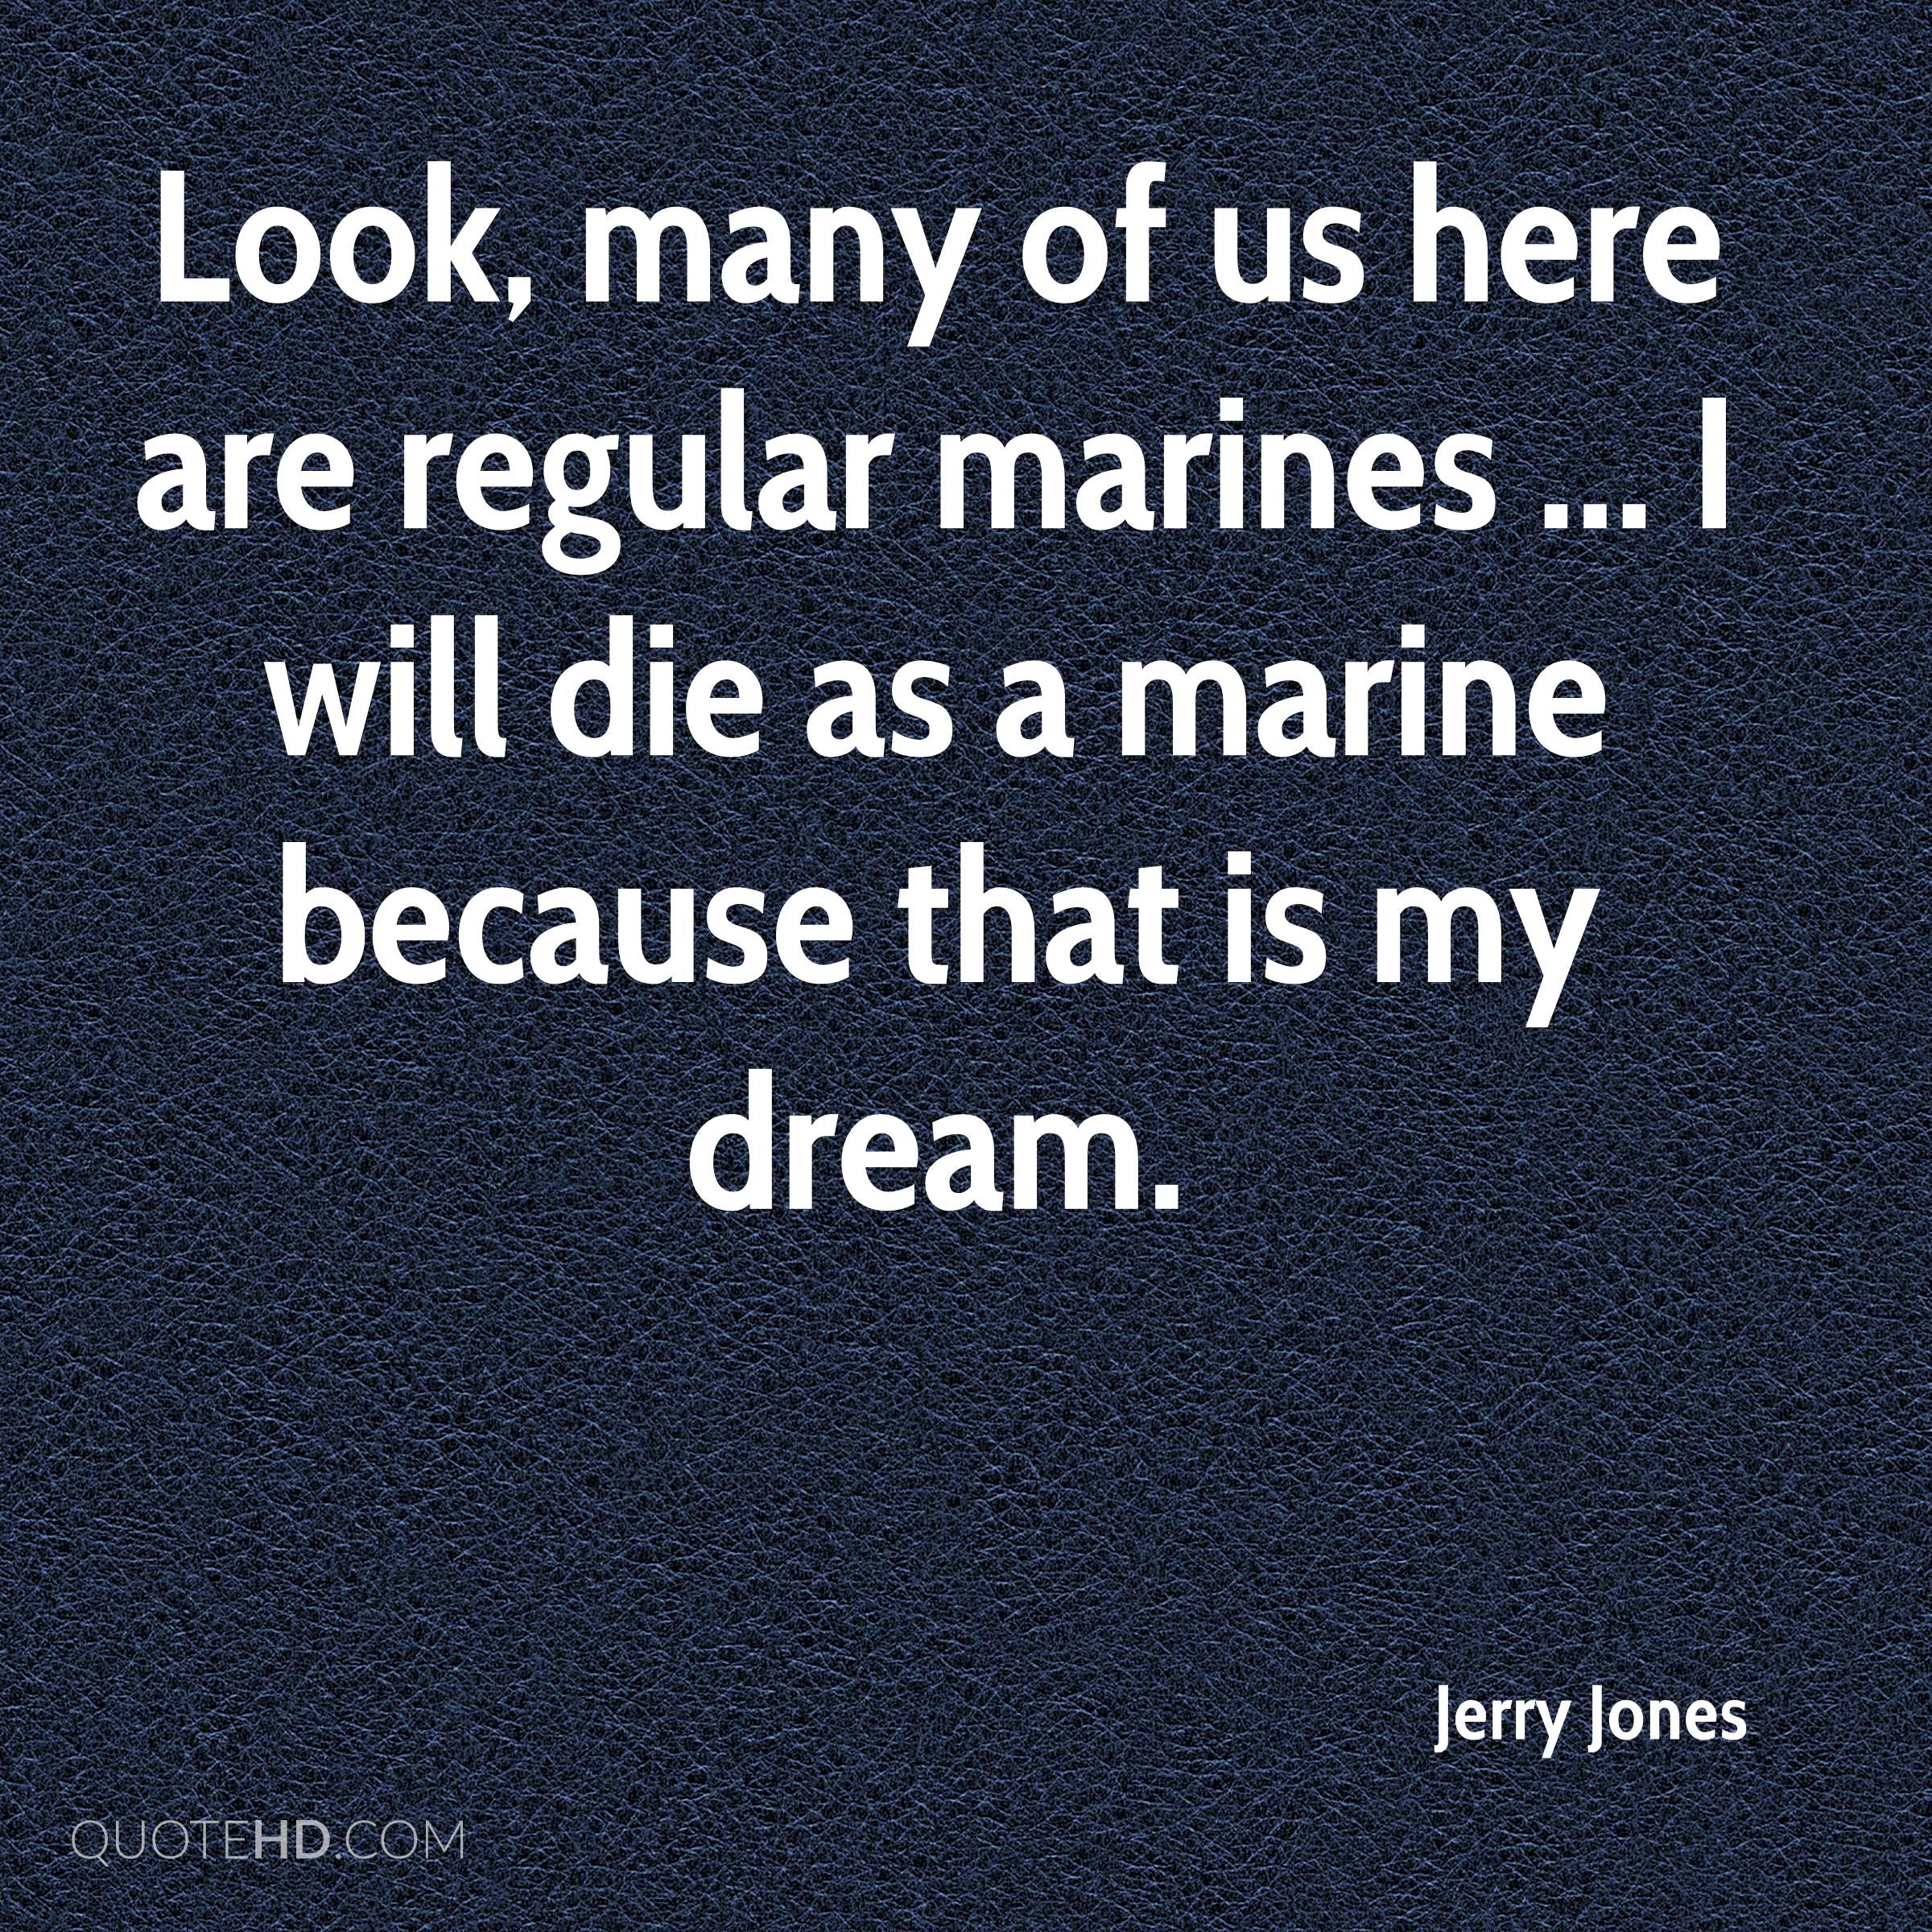 Look, many of us here are regular marines ... I will die as a marine because that is my dream.